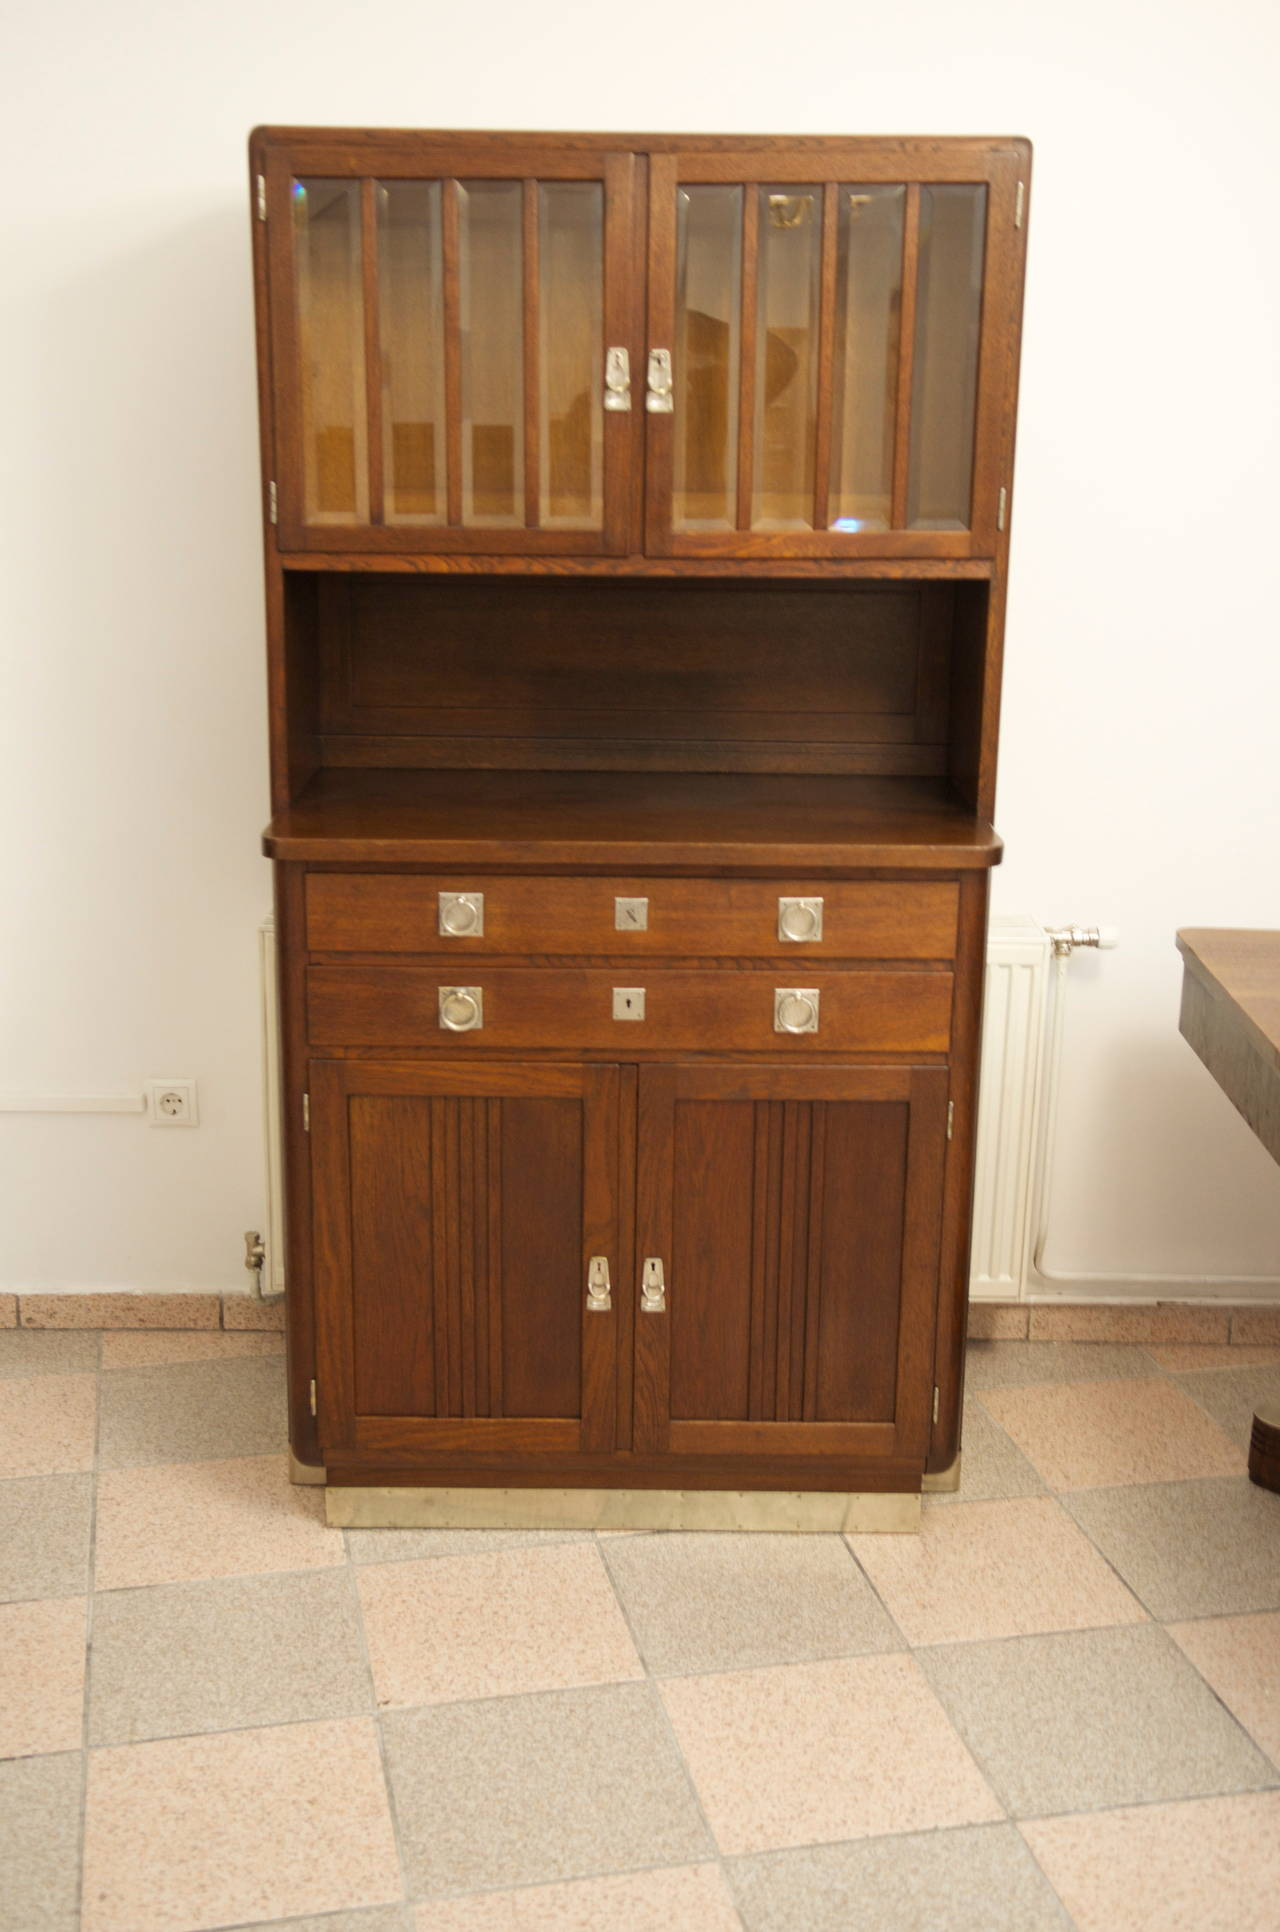 Vienna Secession Small Sideboard Credenza Attributed To